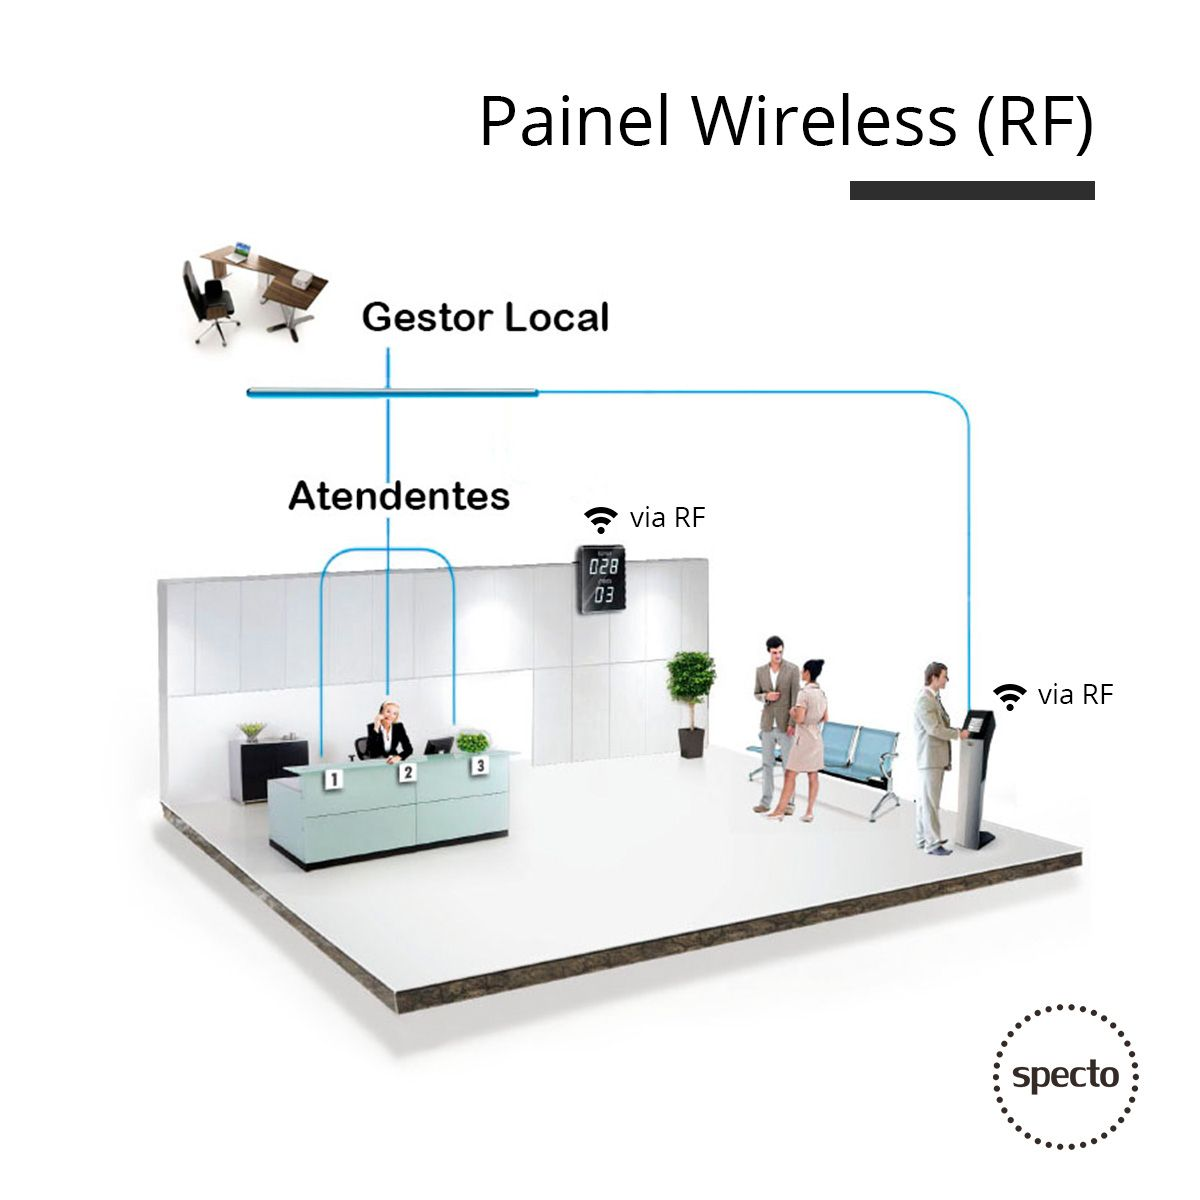 QUALPROX® UNITY Painel de Led Wireless  -  Specto Tecnologia